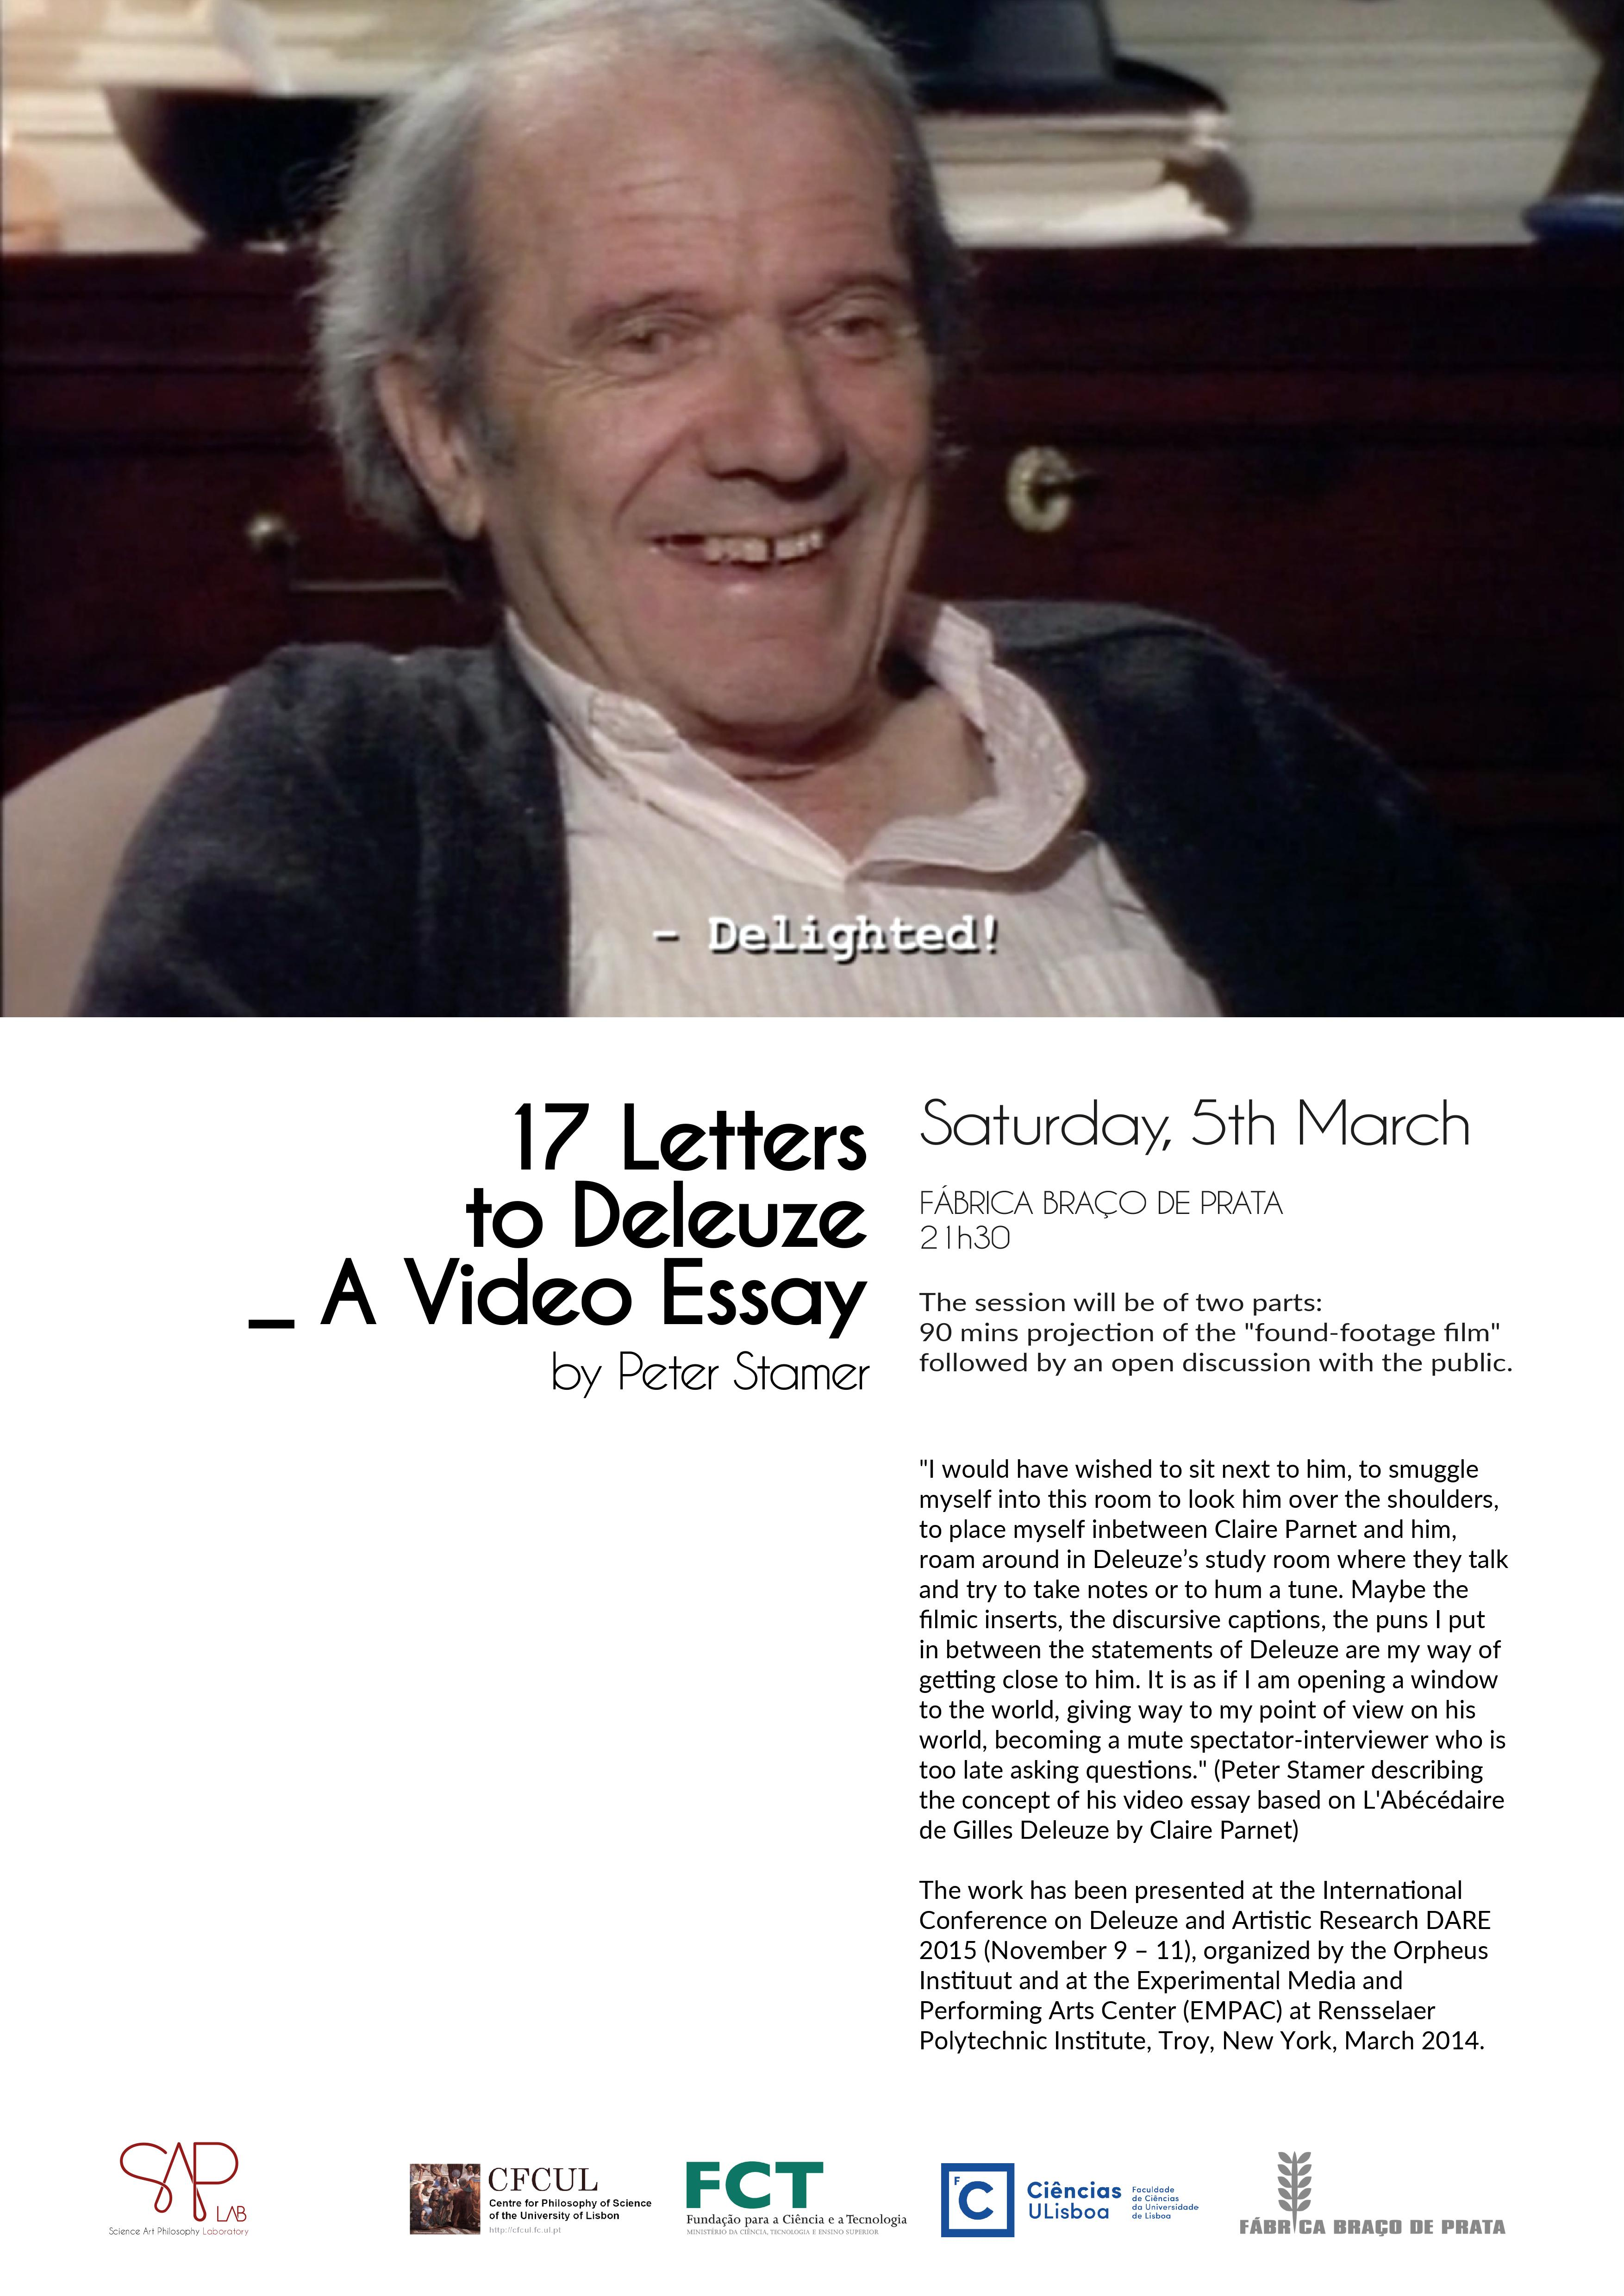 17letters to Deleuze